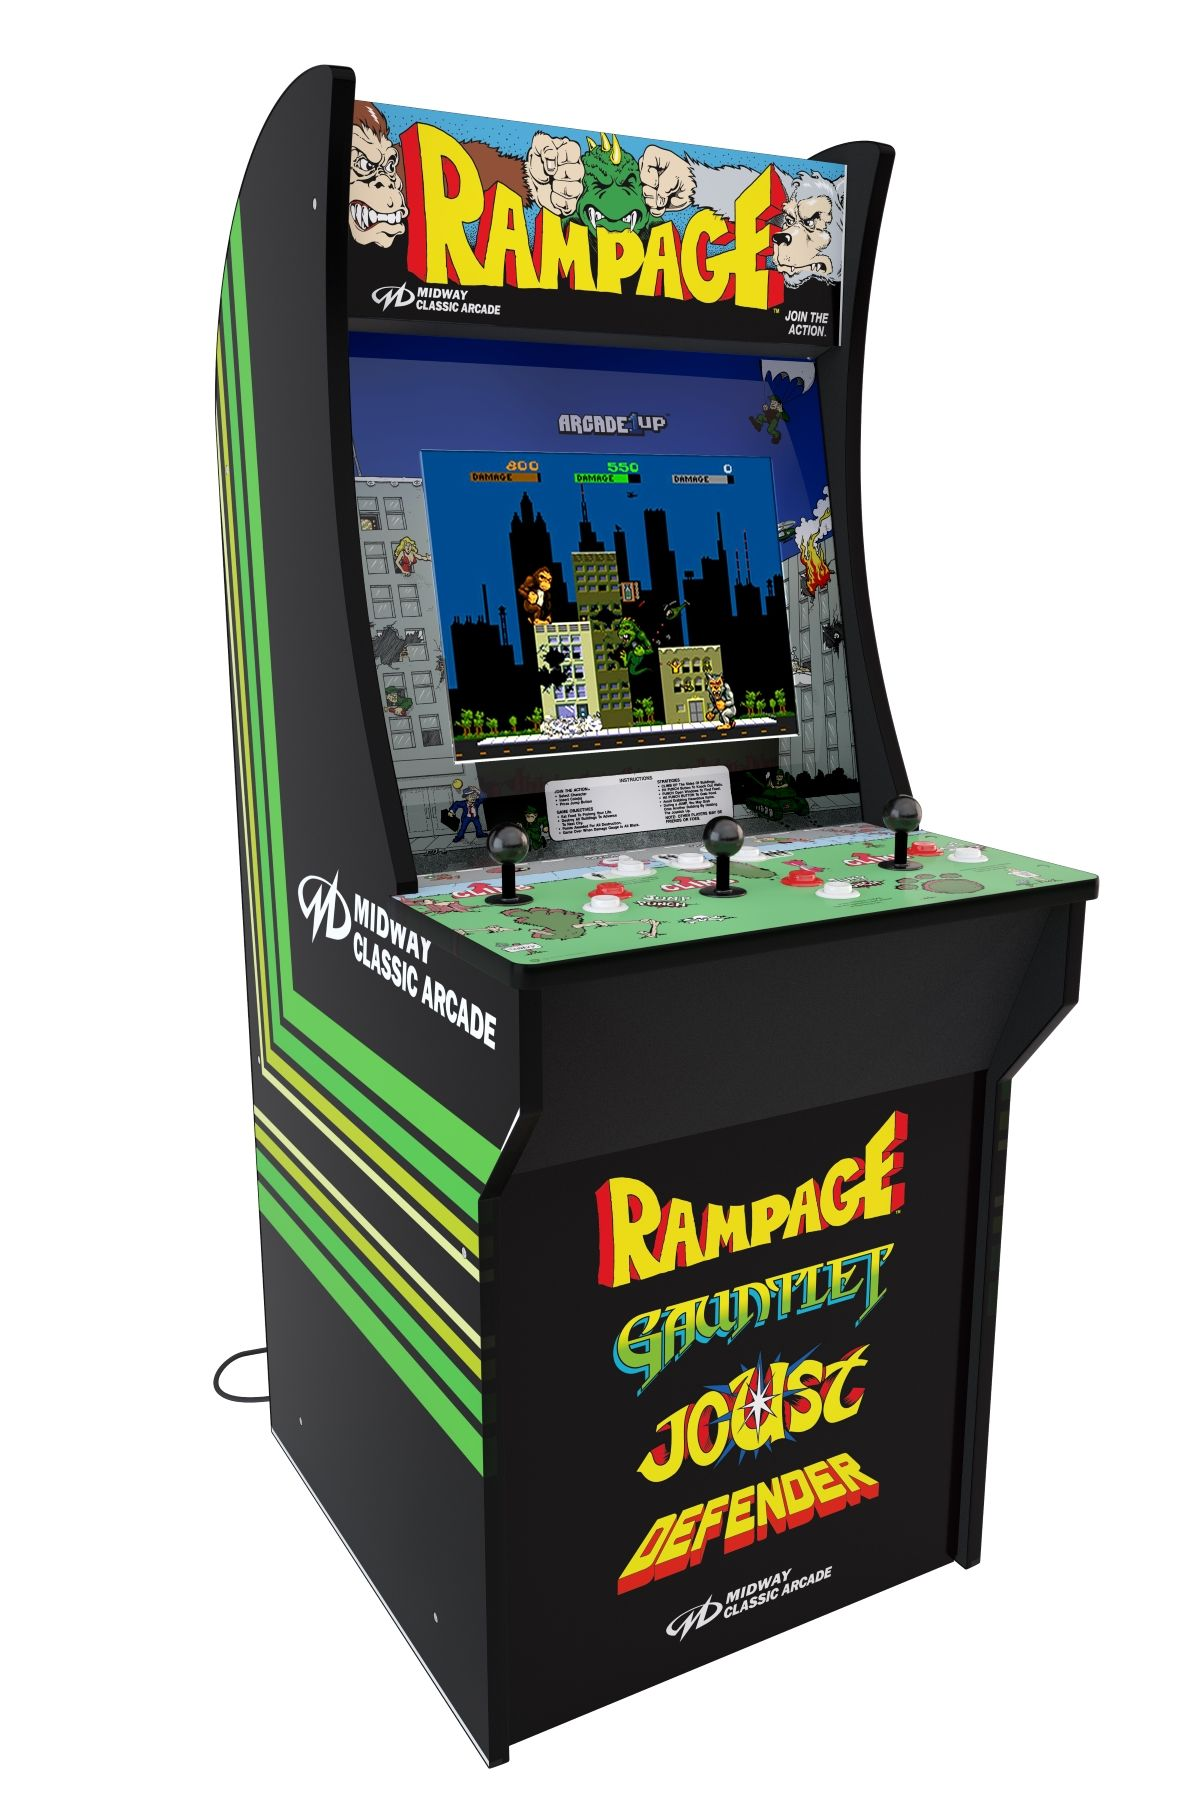 You Can Buy An Arcade1up Retro Arcade Cabinet For Less Than The Cost Of A Nintendo Switch At Walmart Gamesradar